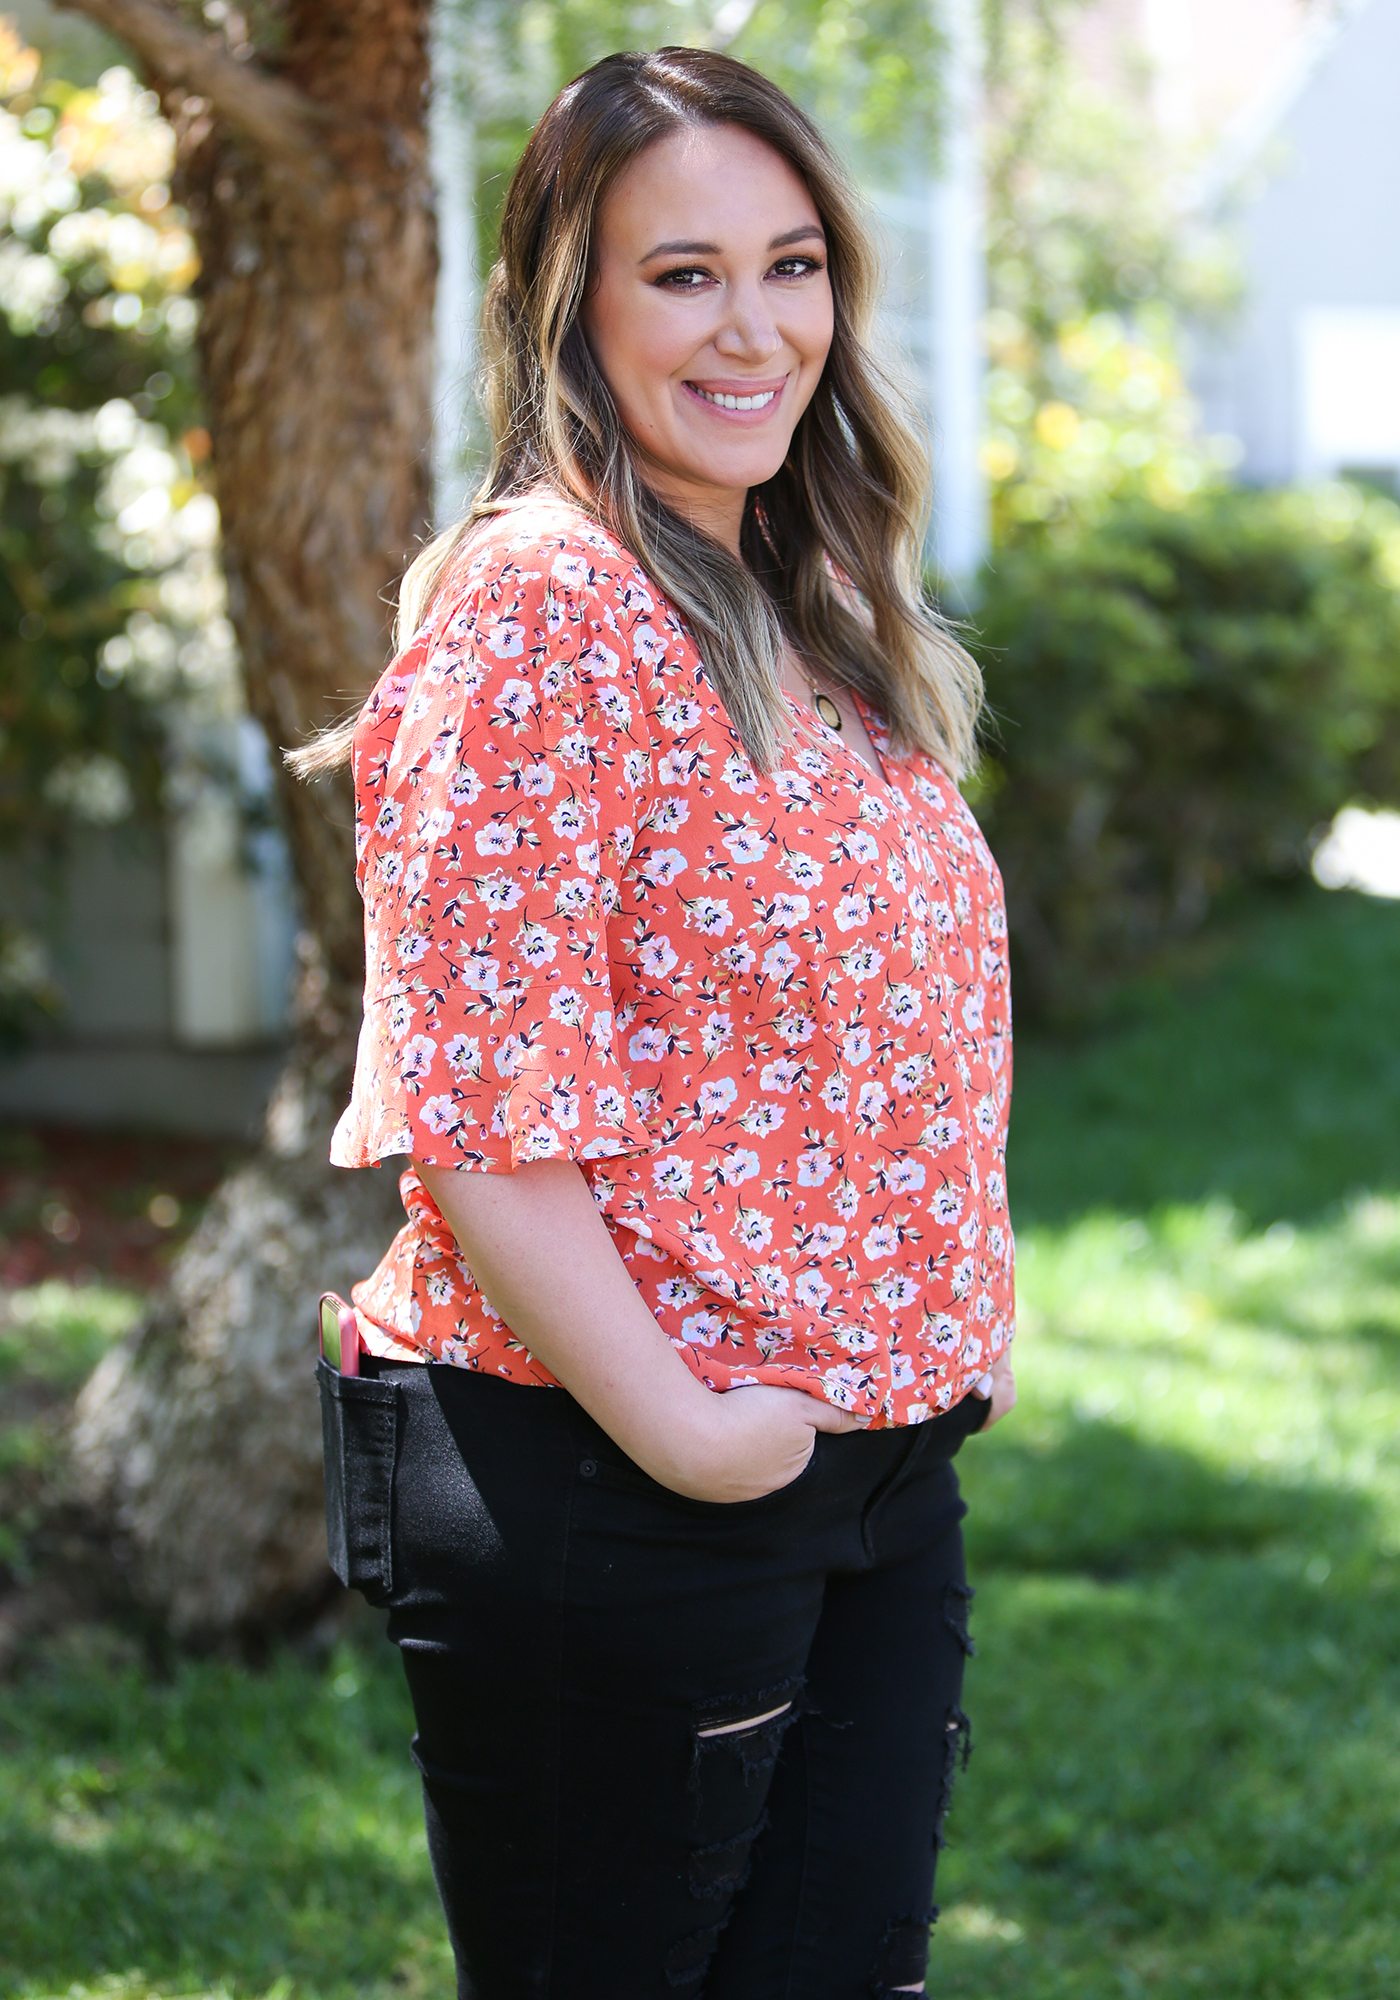 Haylie Duff and Hilary's Daughters Close in Age - Haylie Duff visits Hallmark's 'Home & Family' at Universal Studios Hollywood on April 22, 2019 in Universal City, California.